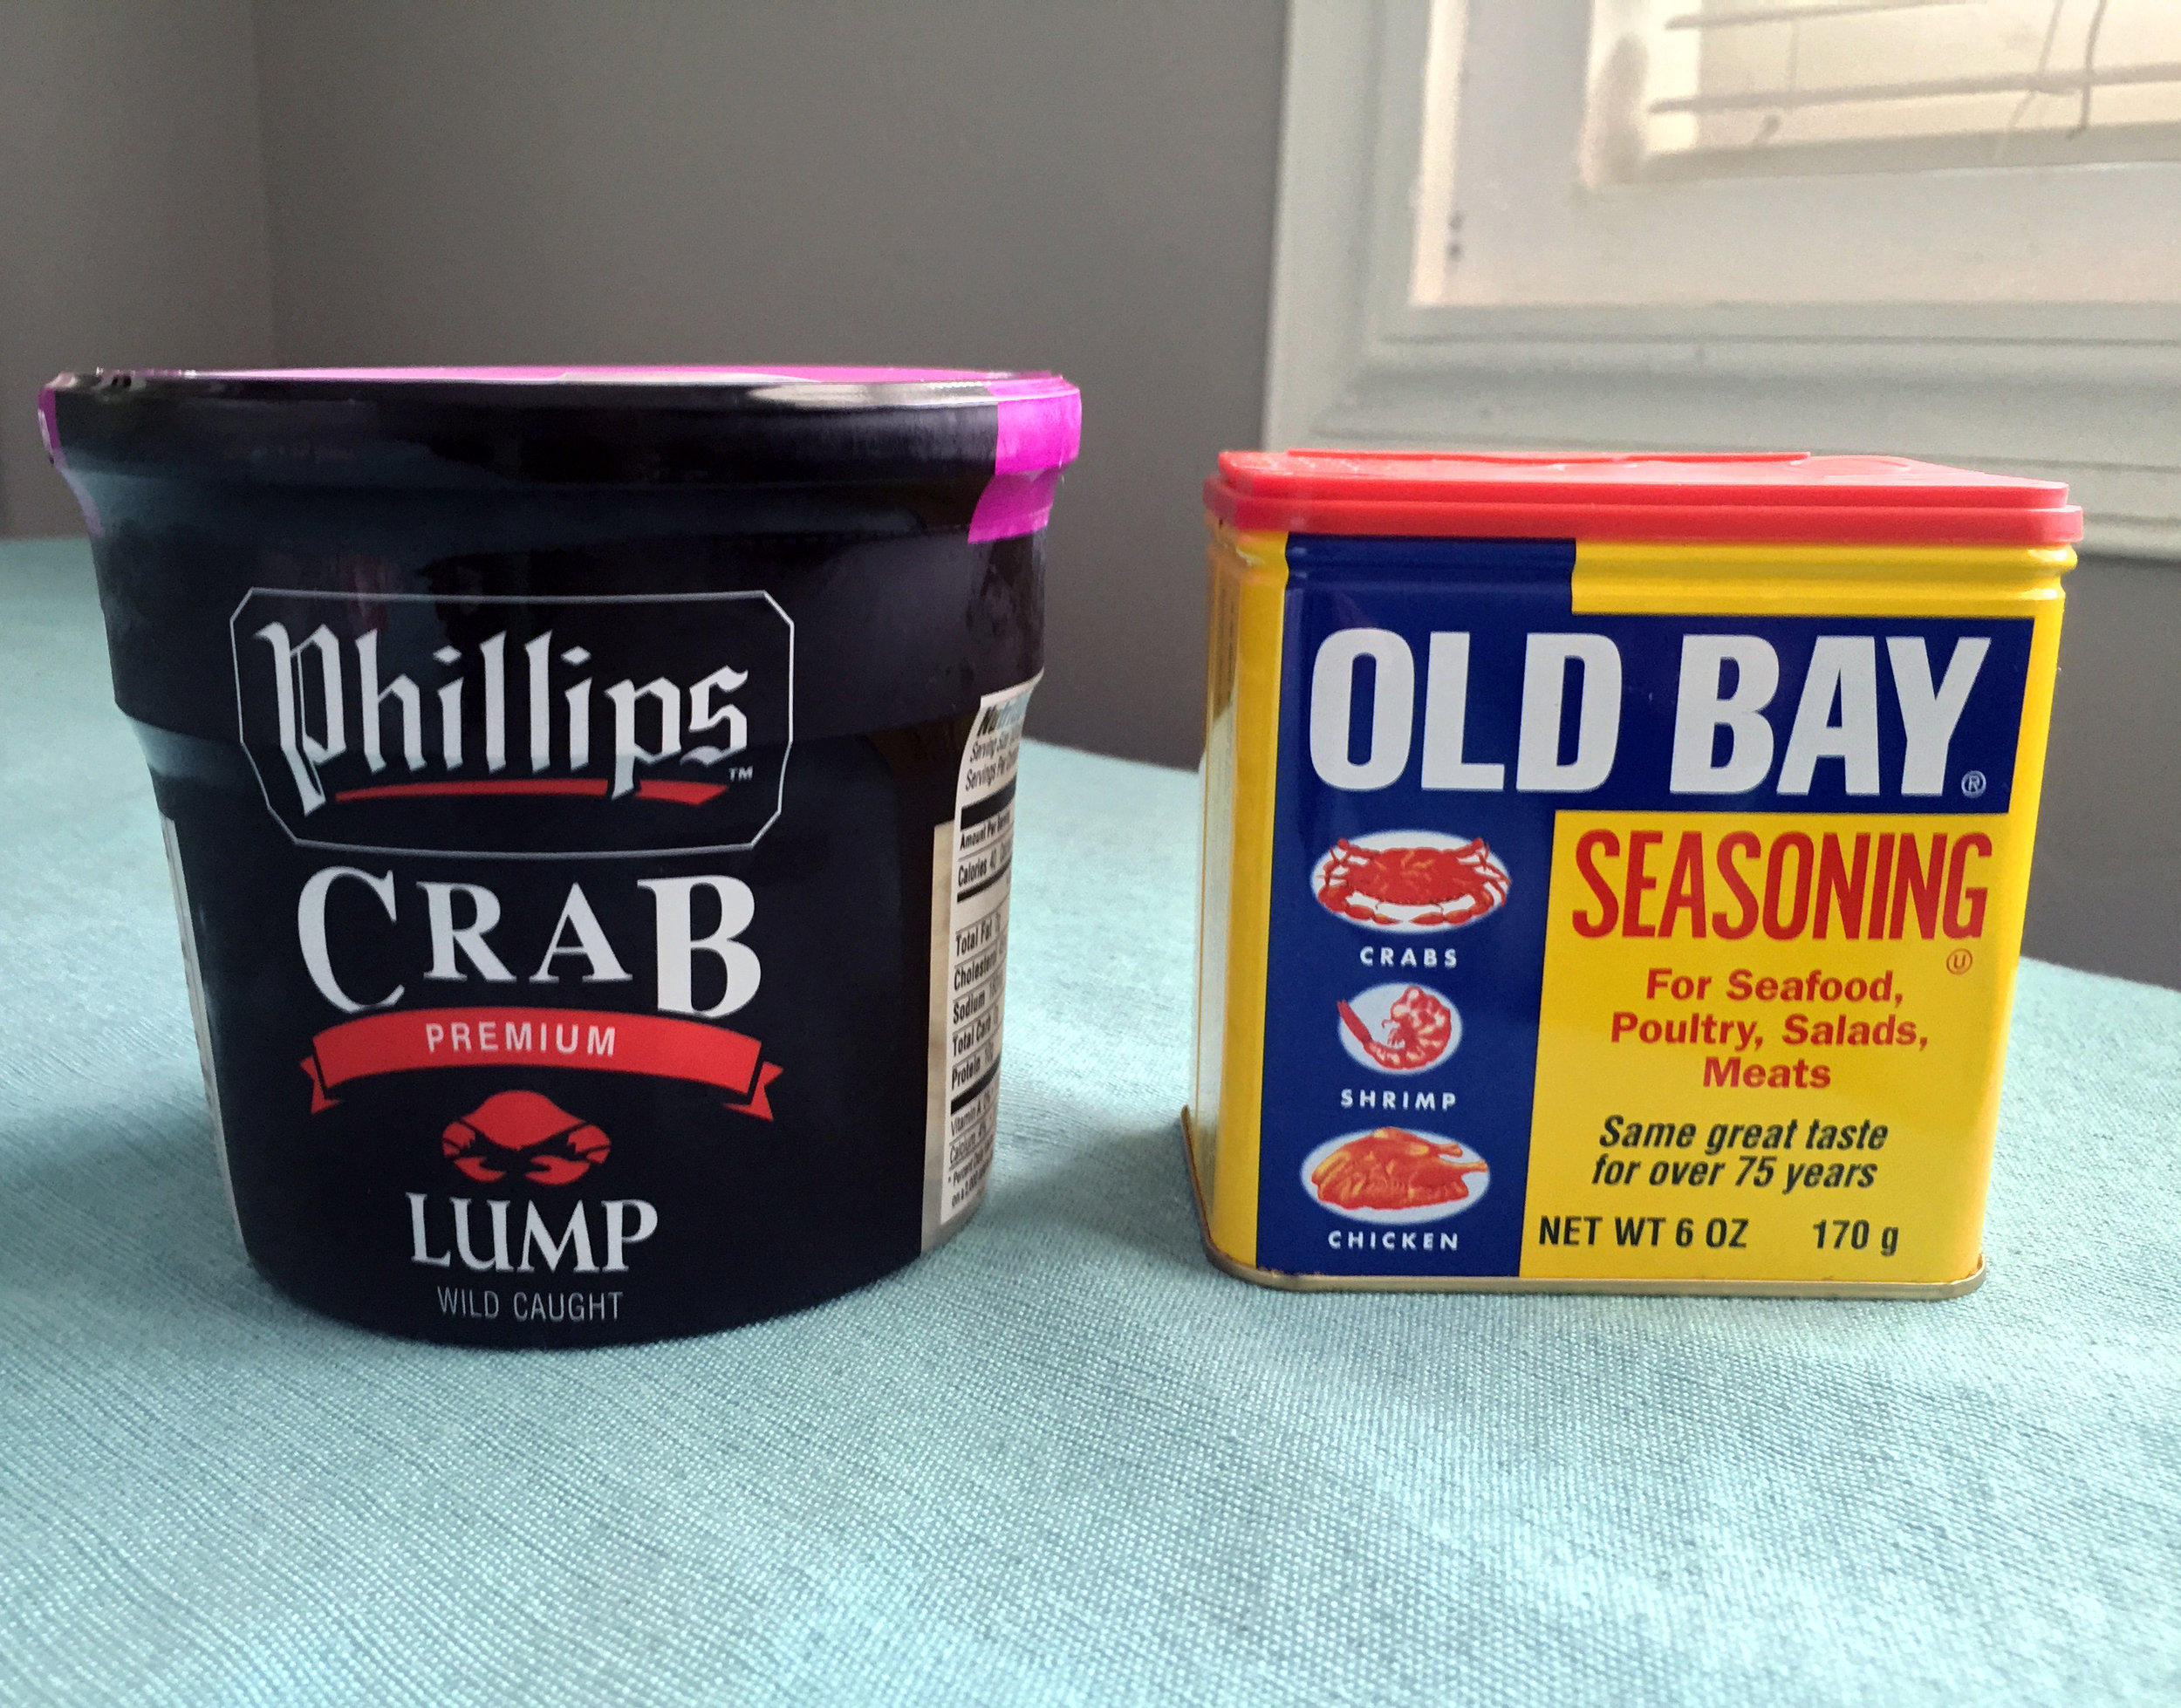 Phillips Jumbo Lump Crab Meat: Maryland Crab Cake Recipe - The Haute Blogger